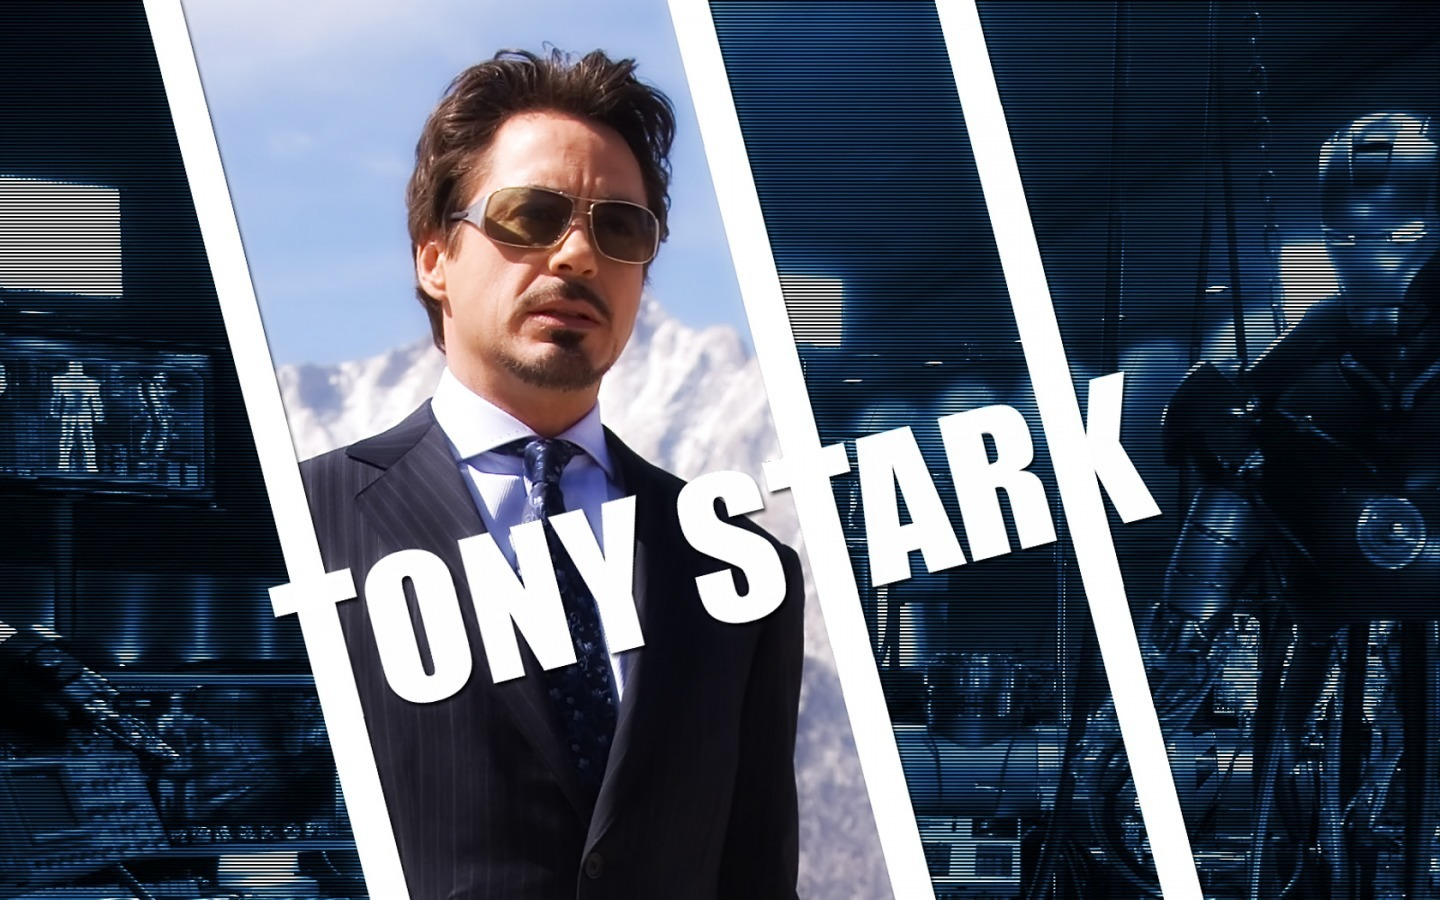 tony stark images iron man hd wallpaper and background photos (19390493)